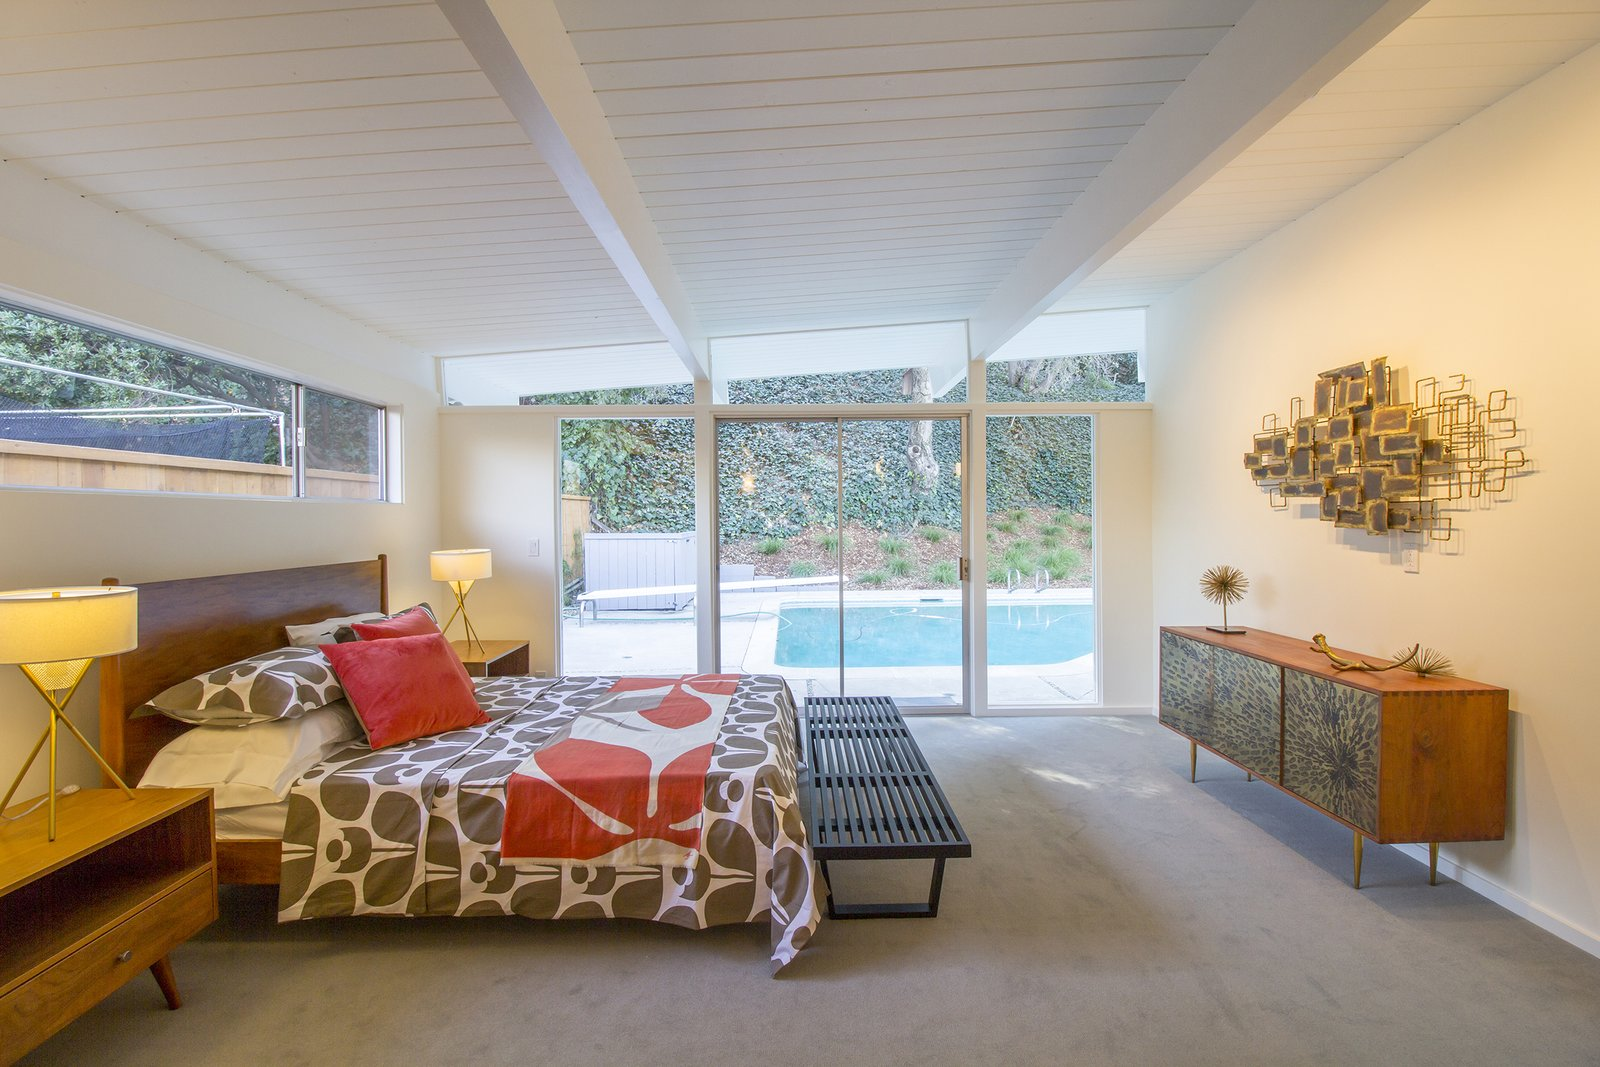 The owners can access the pool in the backyard via sliding doors in the master bedroom.